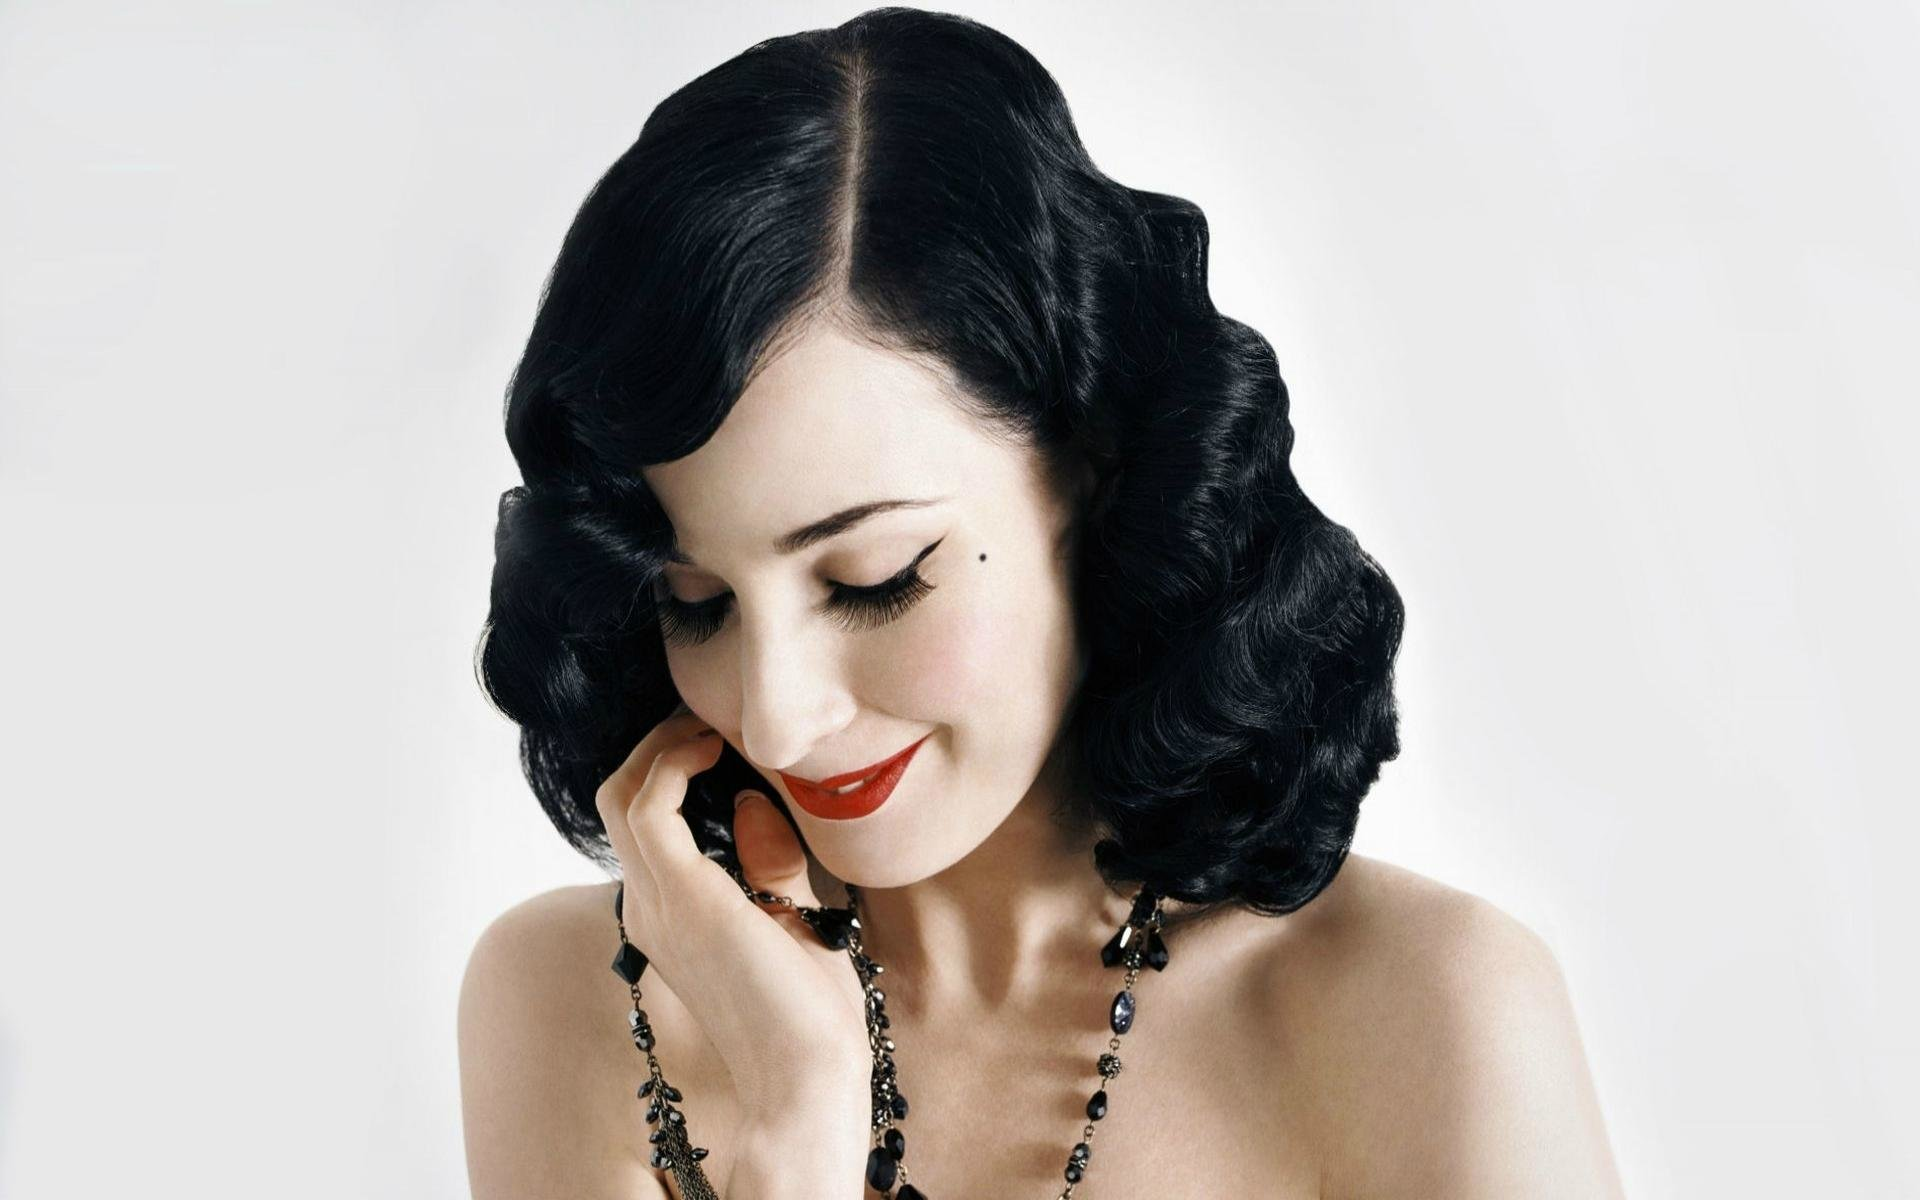 Free download Dita Von Teese wallpaper ID:10102 hd 1920x1200 for PC